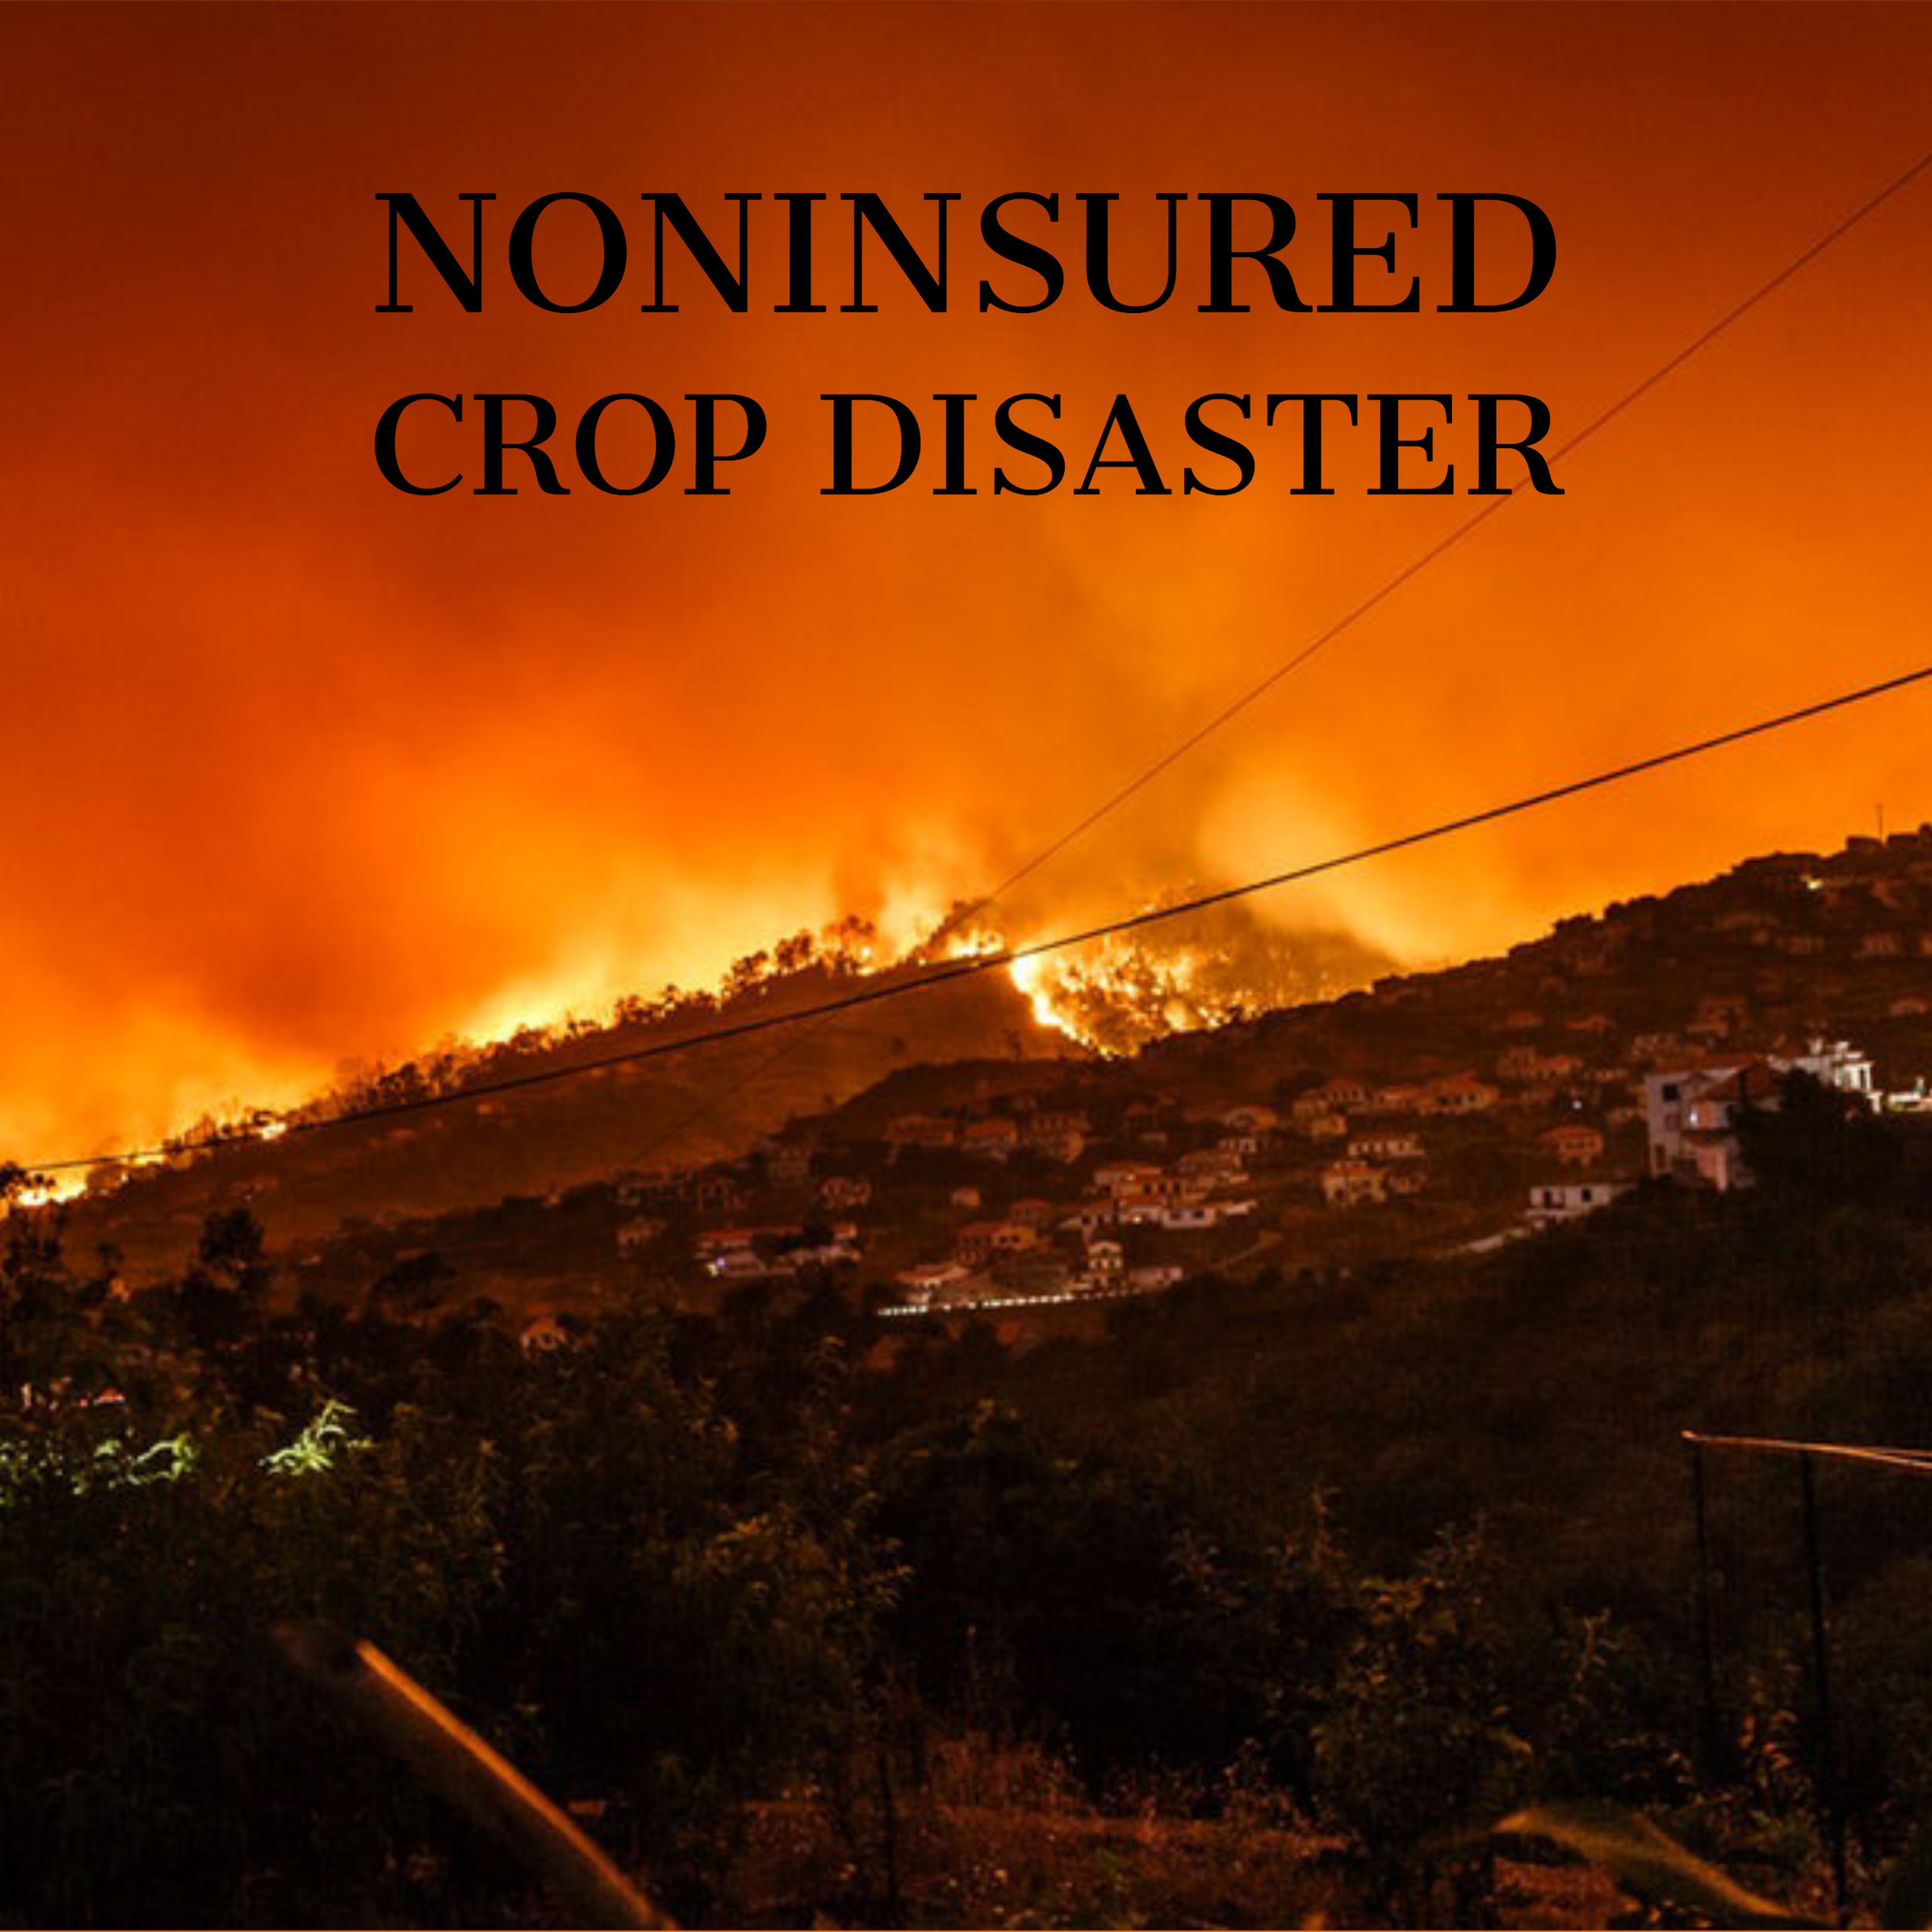 Noninsured Crop Disaster Assistance Program (NAP) - The Noninsured crop disaster assistance program assistance to producers of noninsurable crops to protect against natural disasters that results in lower yields or crops losses, or prevents crop planting. PDF information can be found here.